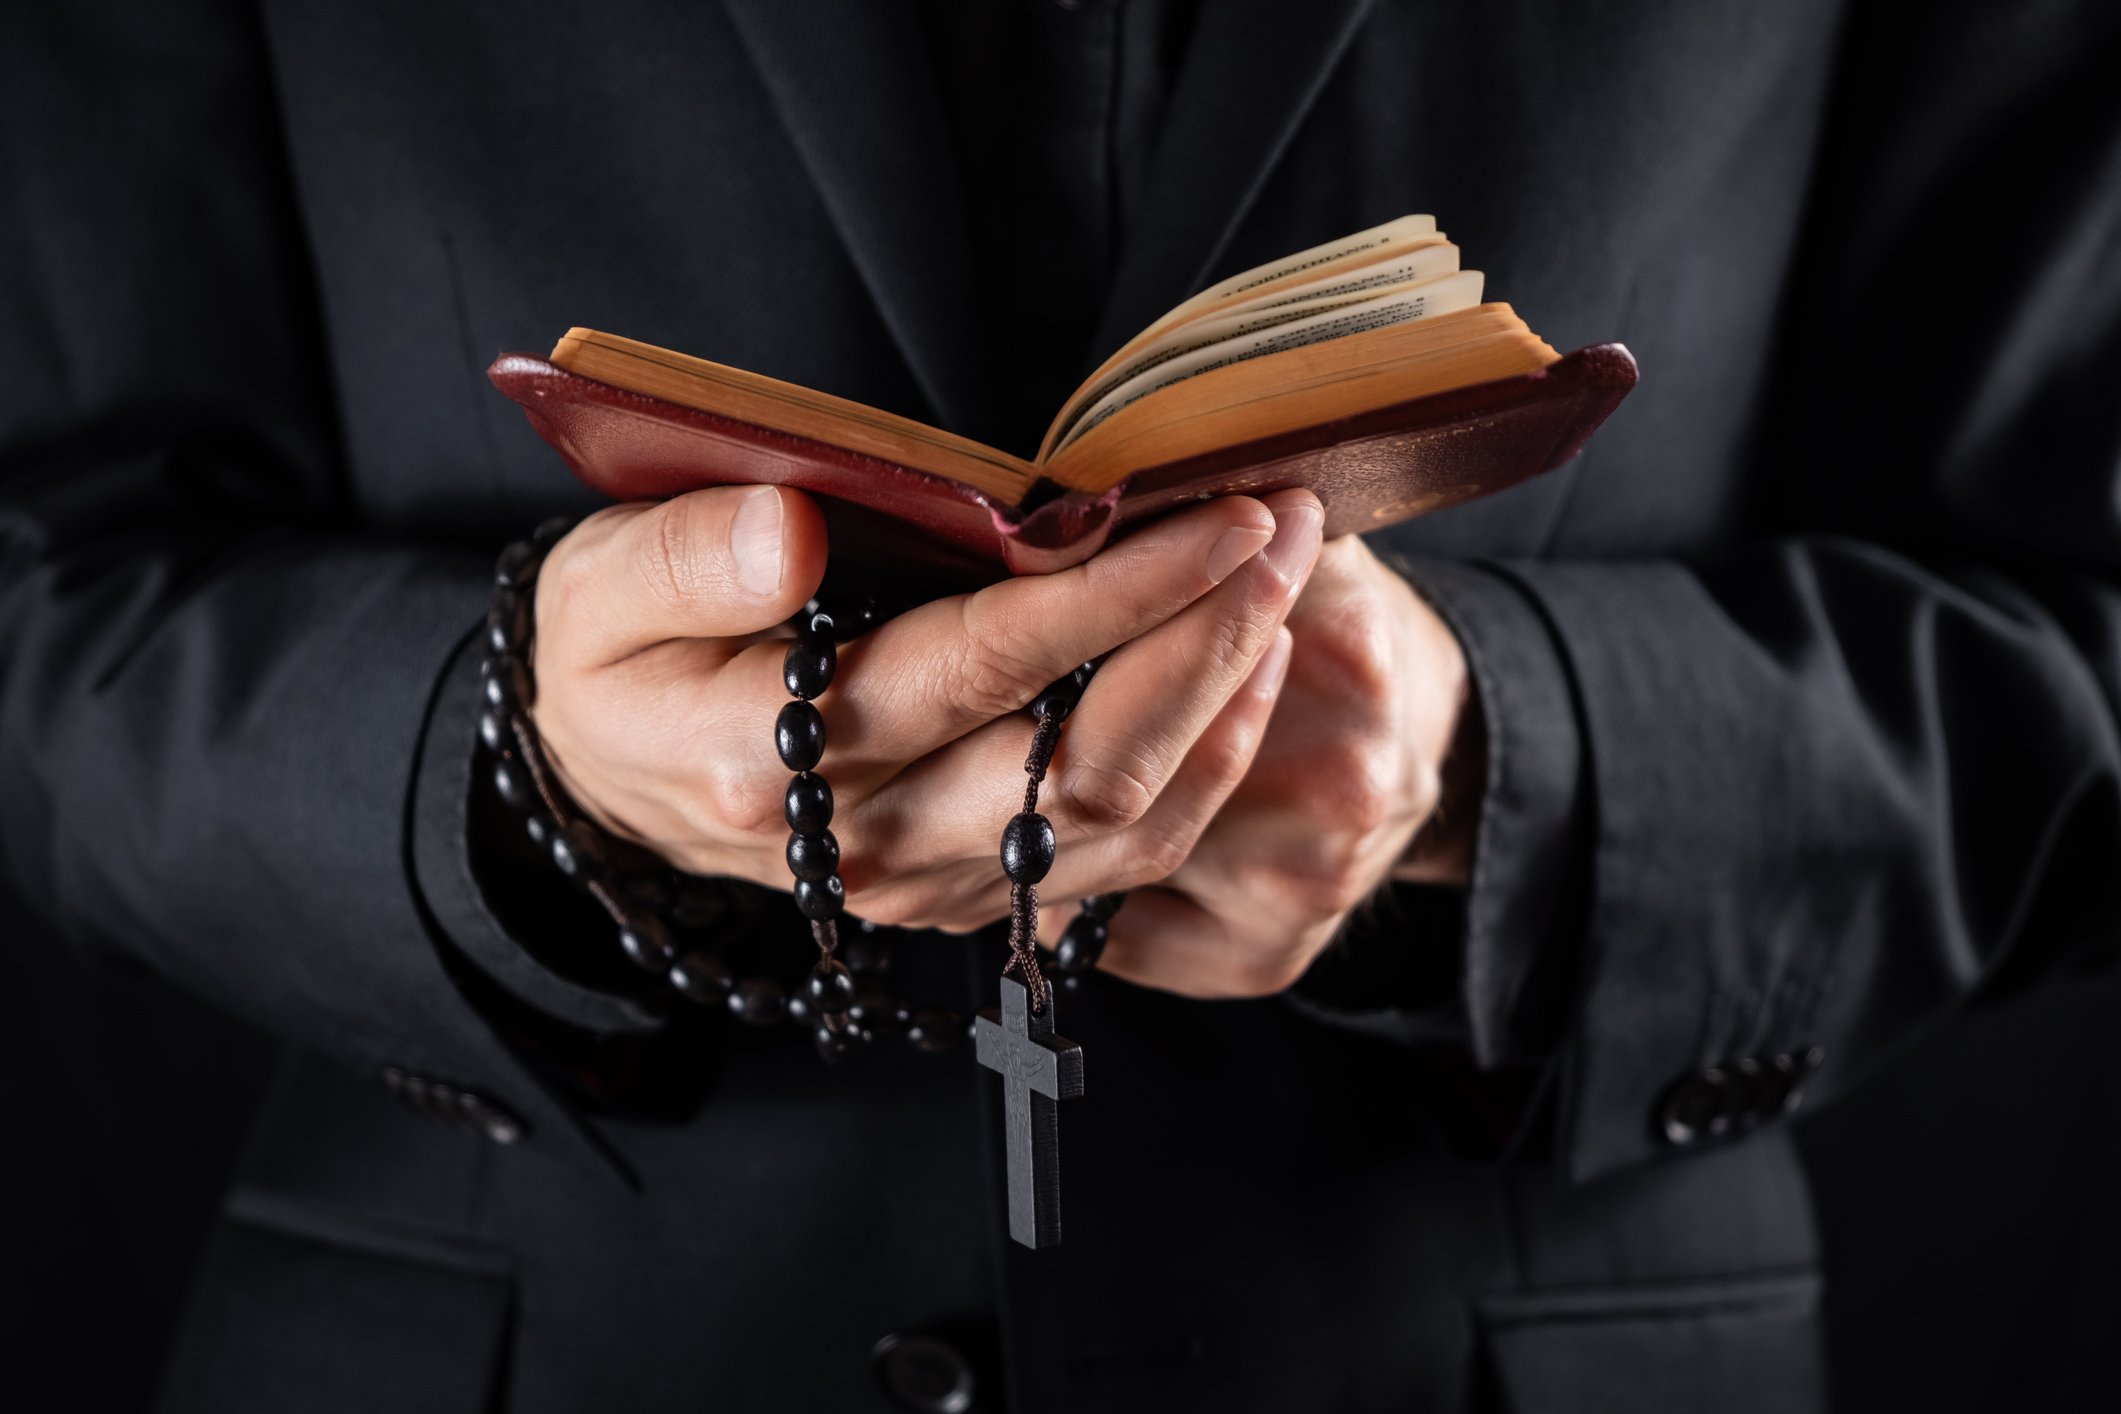 Hands of a christian priest dressed in black holding a crucifix and reading New Testament book | Photo: Getty Images